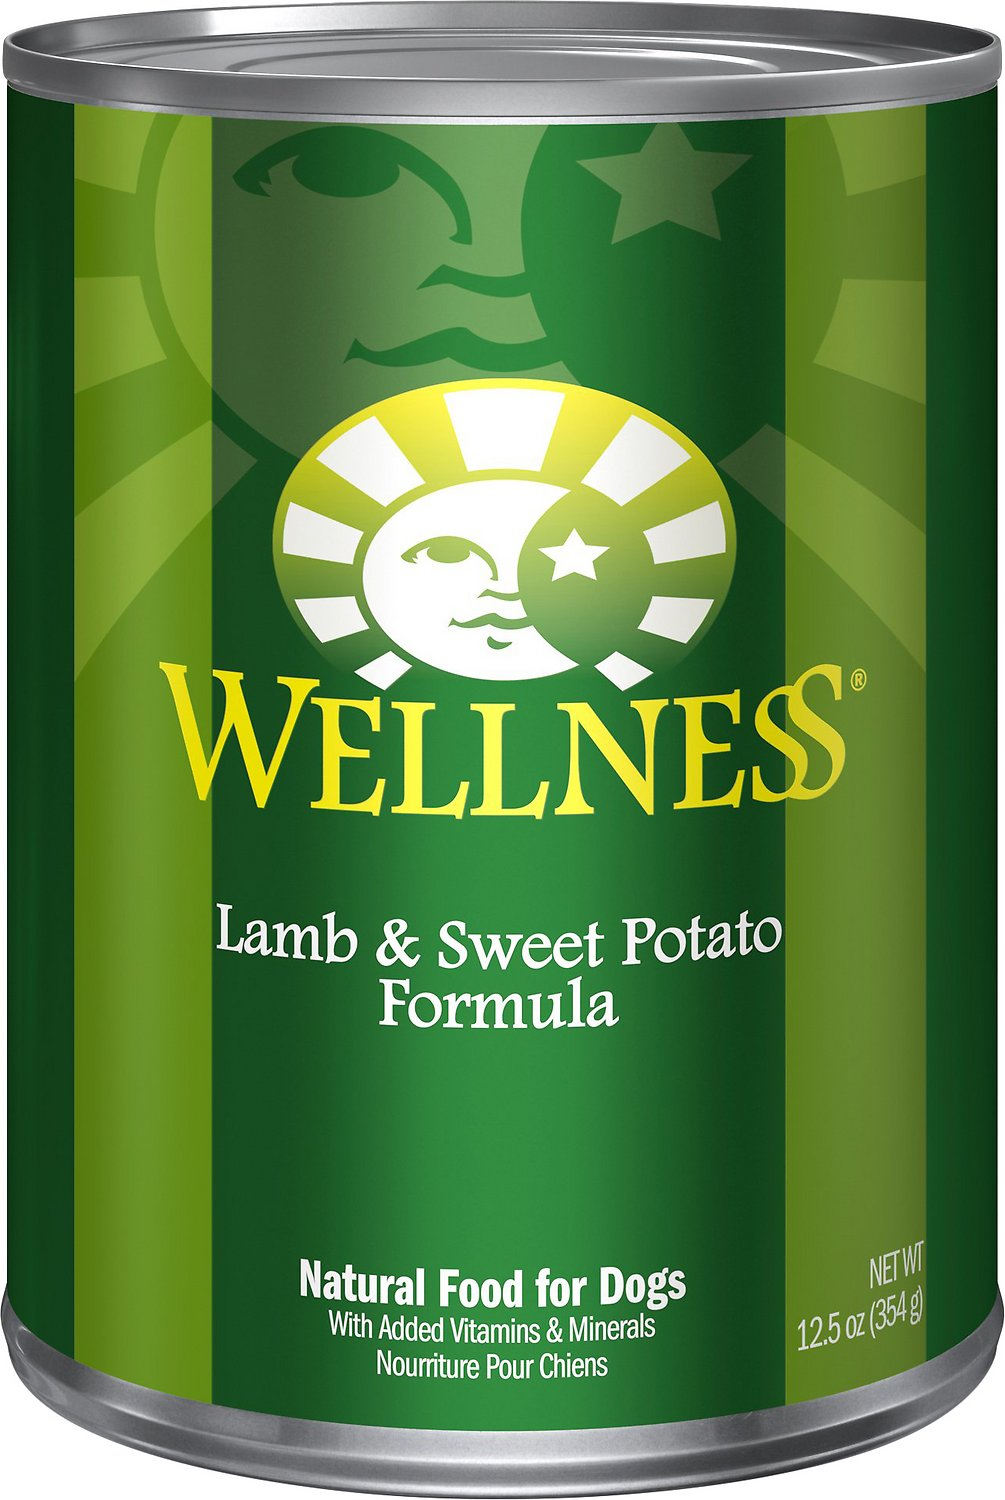 Wellness Complete Health Lamb & Sweet Potato Formula Canned Dog Food, 12.5-oz